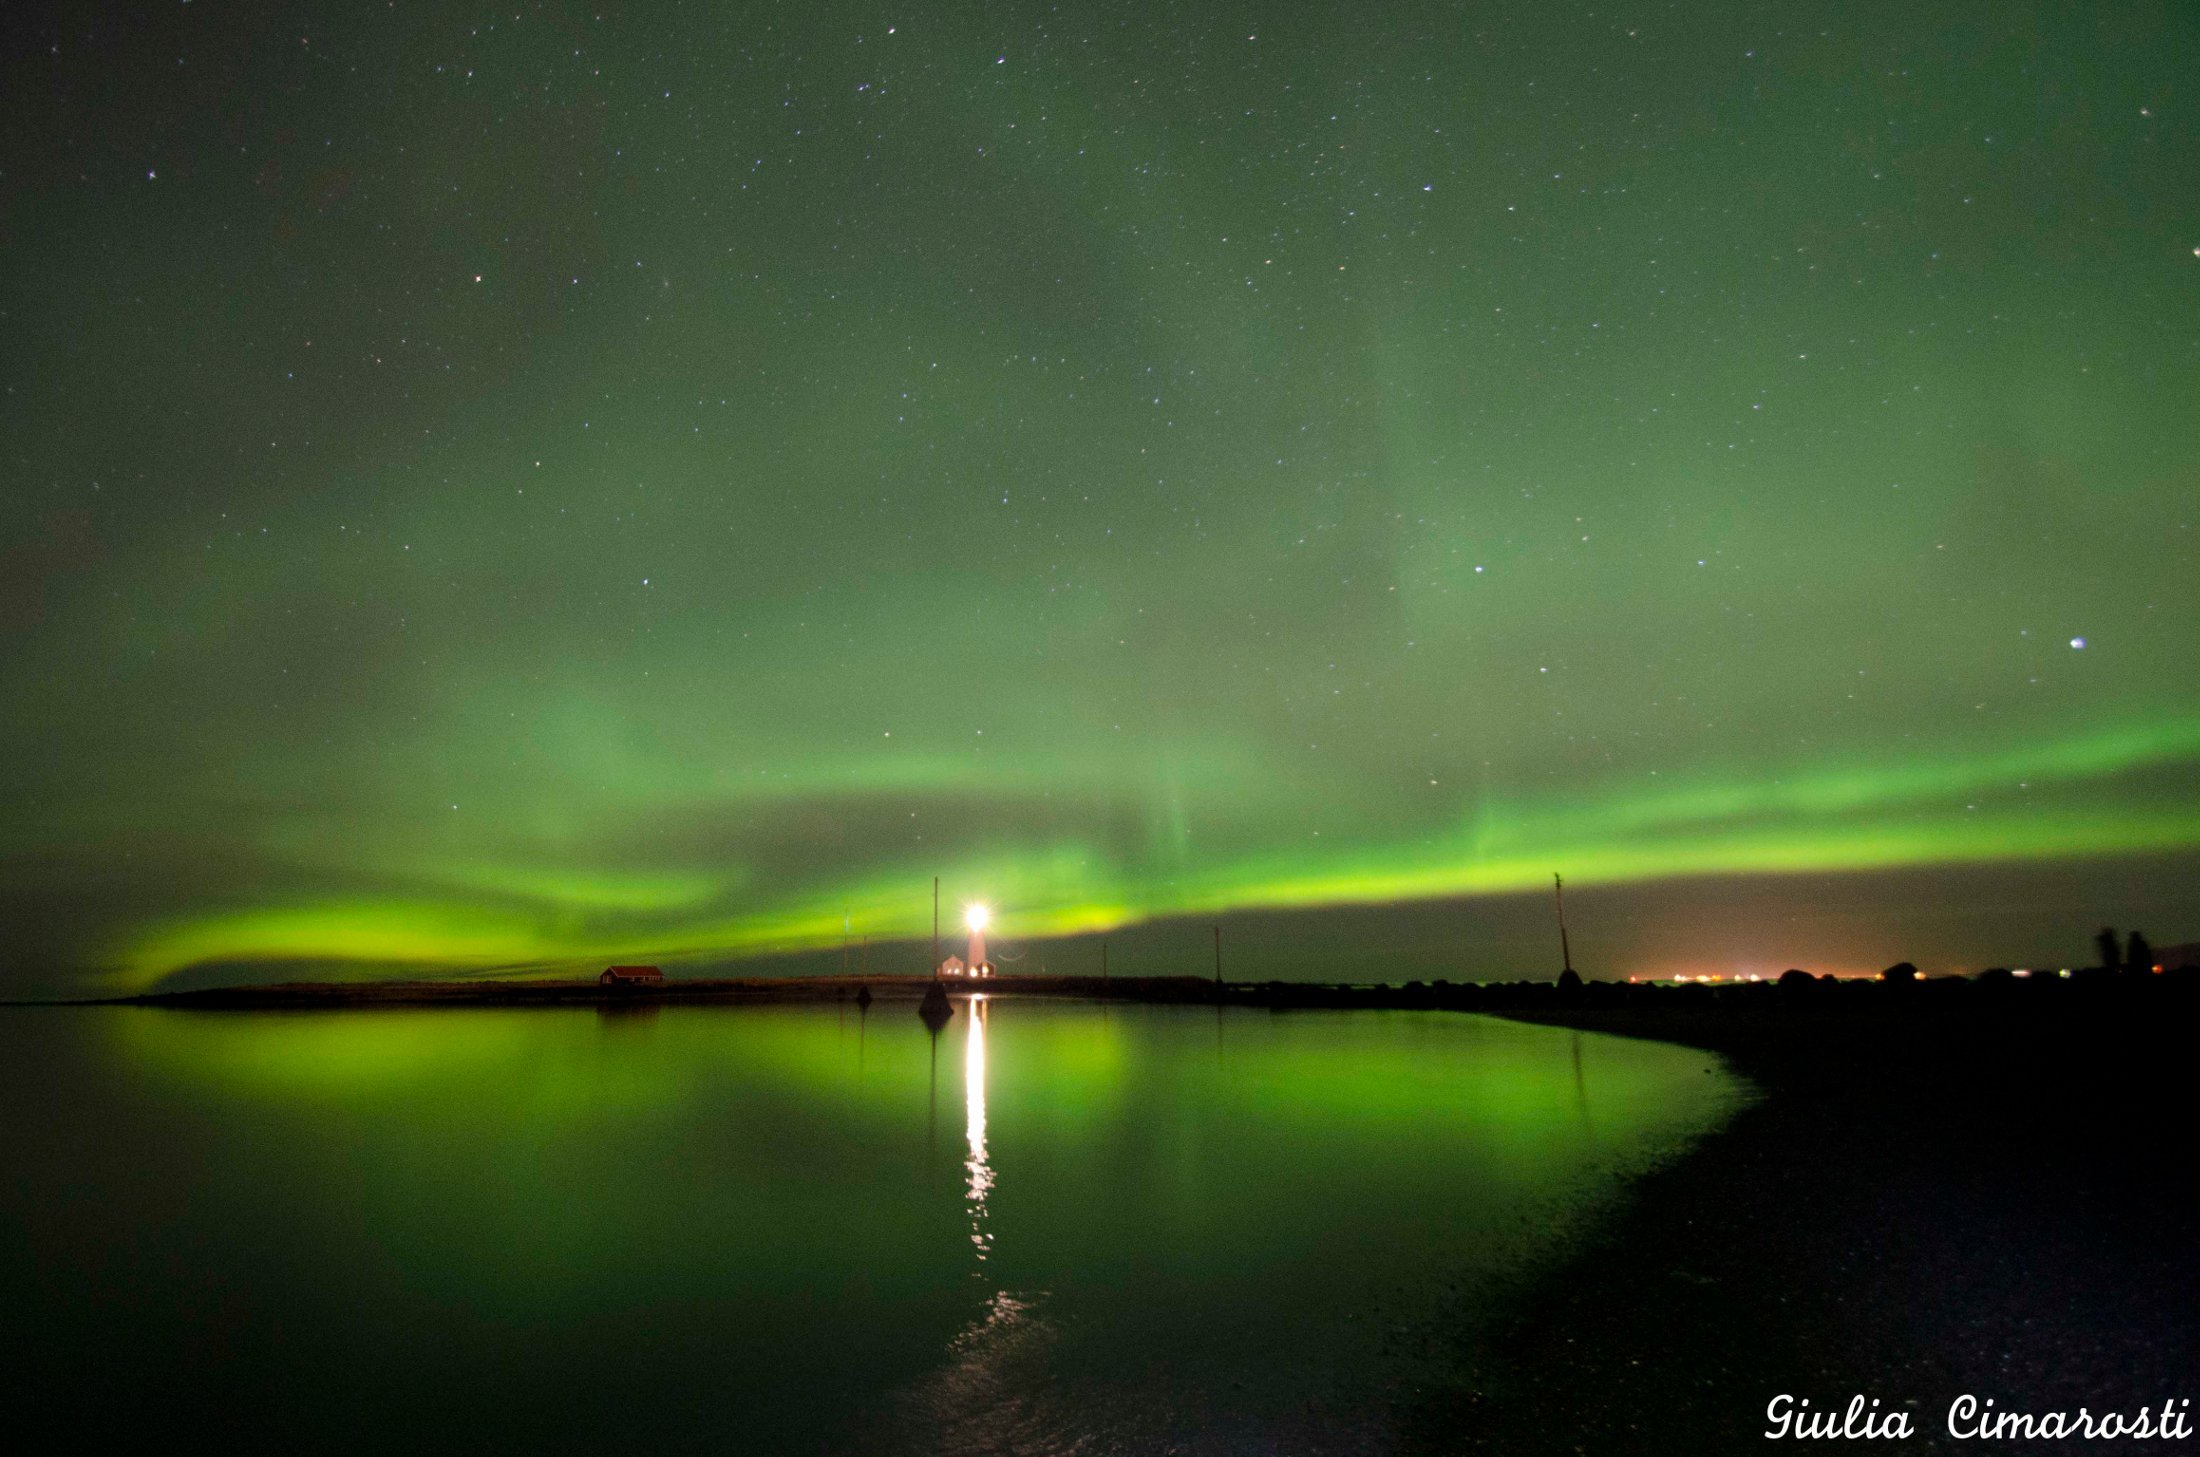 We Are Going Through A Period Of Very Intense Solar Activity, Which Means  Beautiful Northern Lights Displays. And Since I Know Seeing Them Is On Many  ...